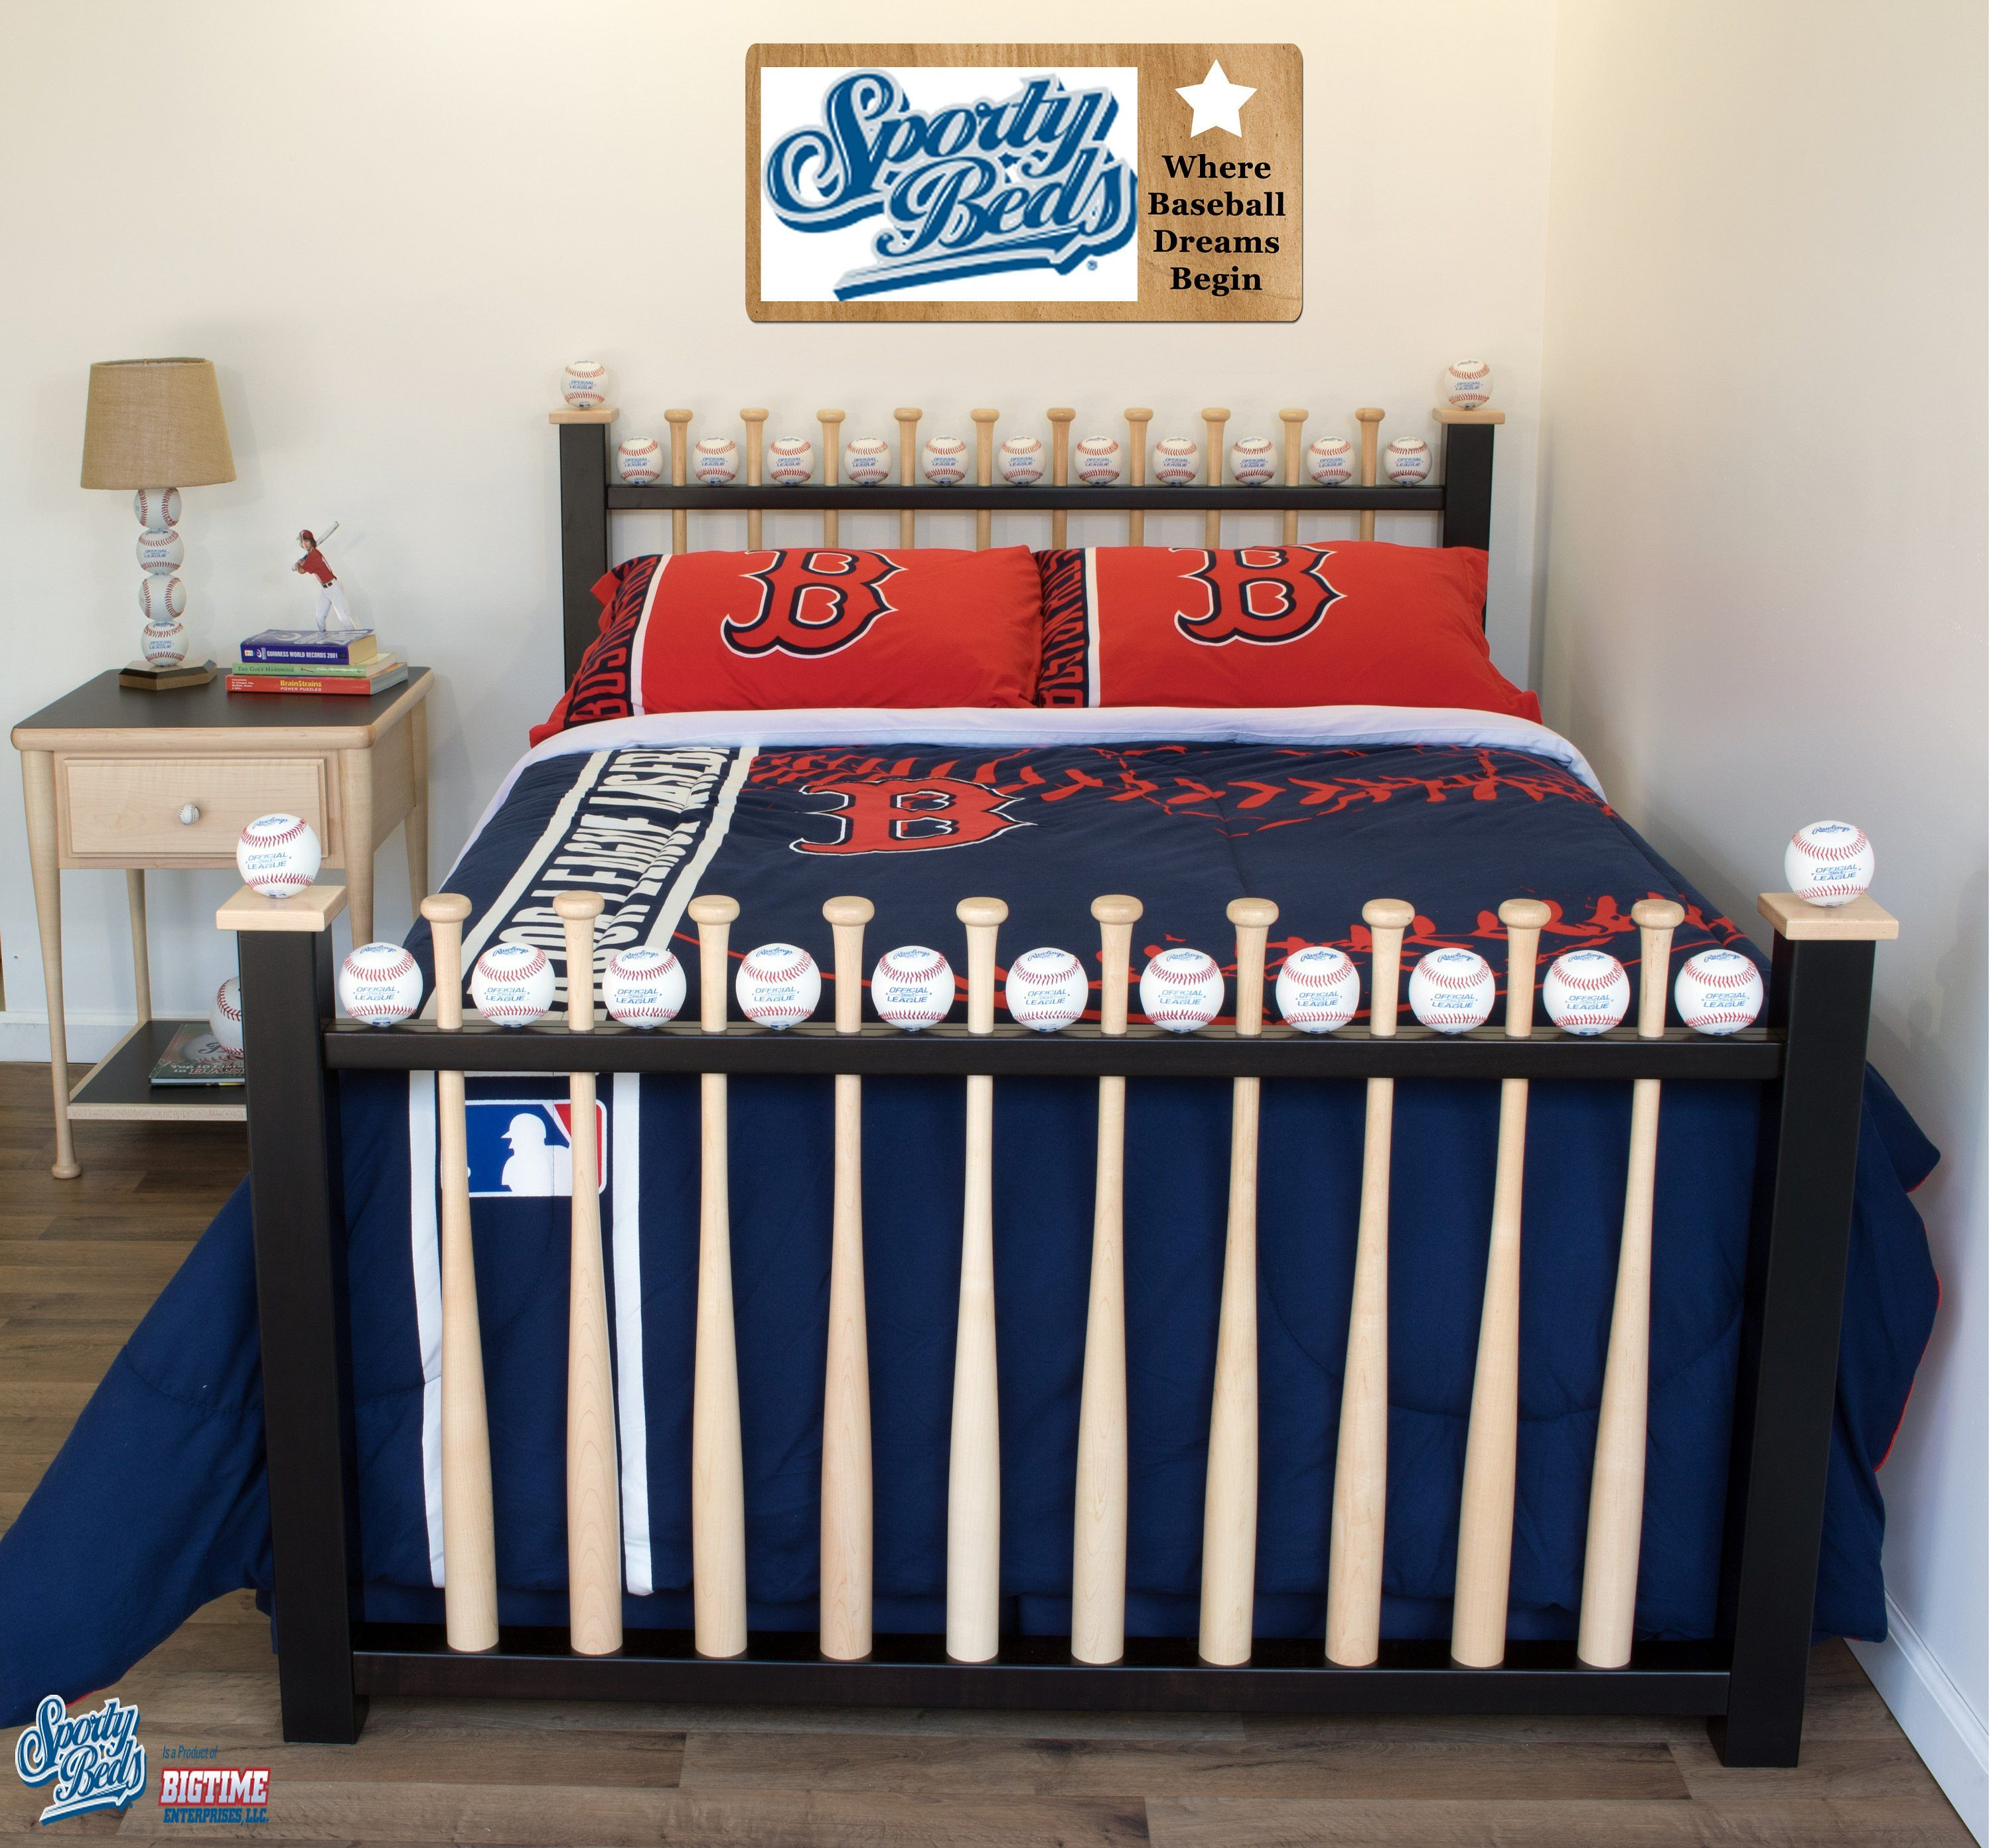 Full Size Big League Baseball Bed by Sporty Beds (With